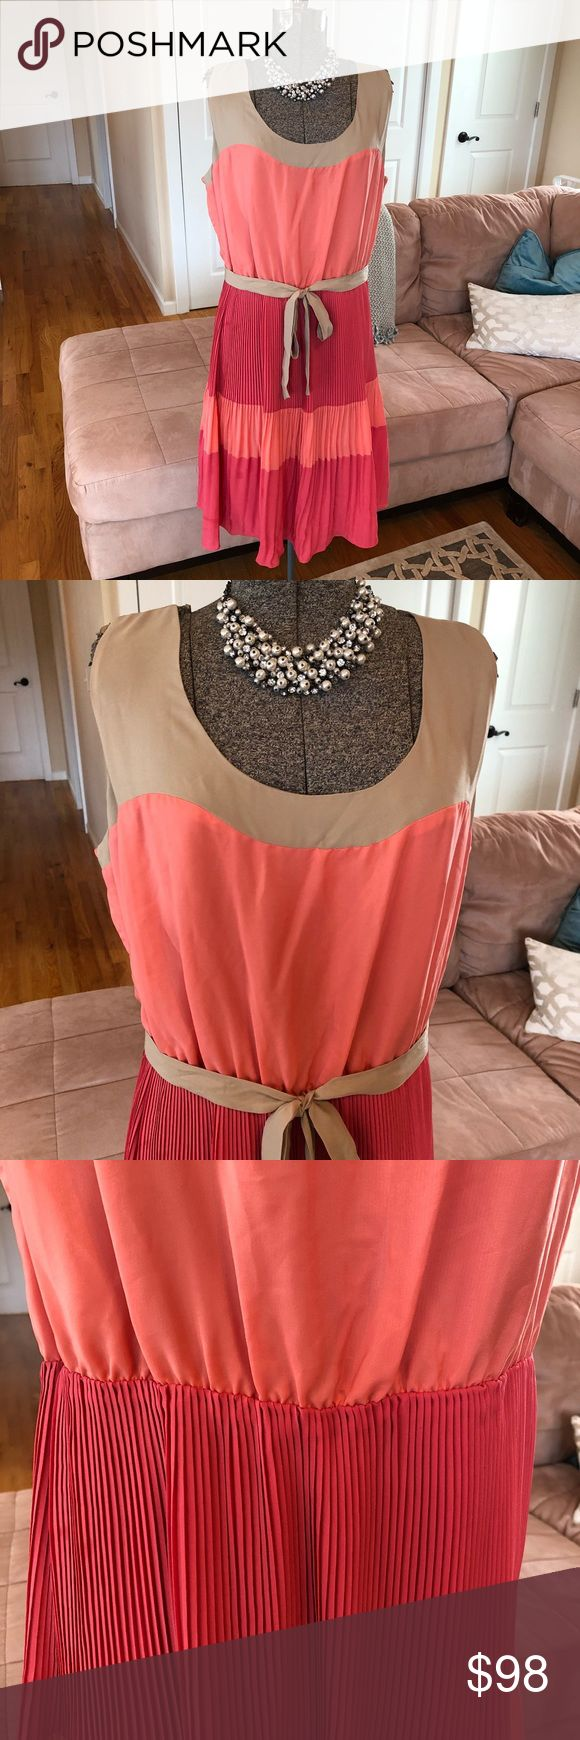 NWT THE LIMITED PINK, CORAL & TAN DRESS Warning: the tag on the dress says XL and the price tags says L.  Please see the measurements in the pictures to give you the true sizing! Thank you The Limited Dresses